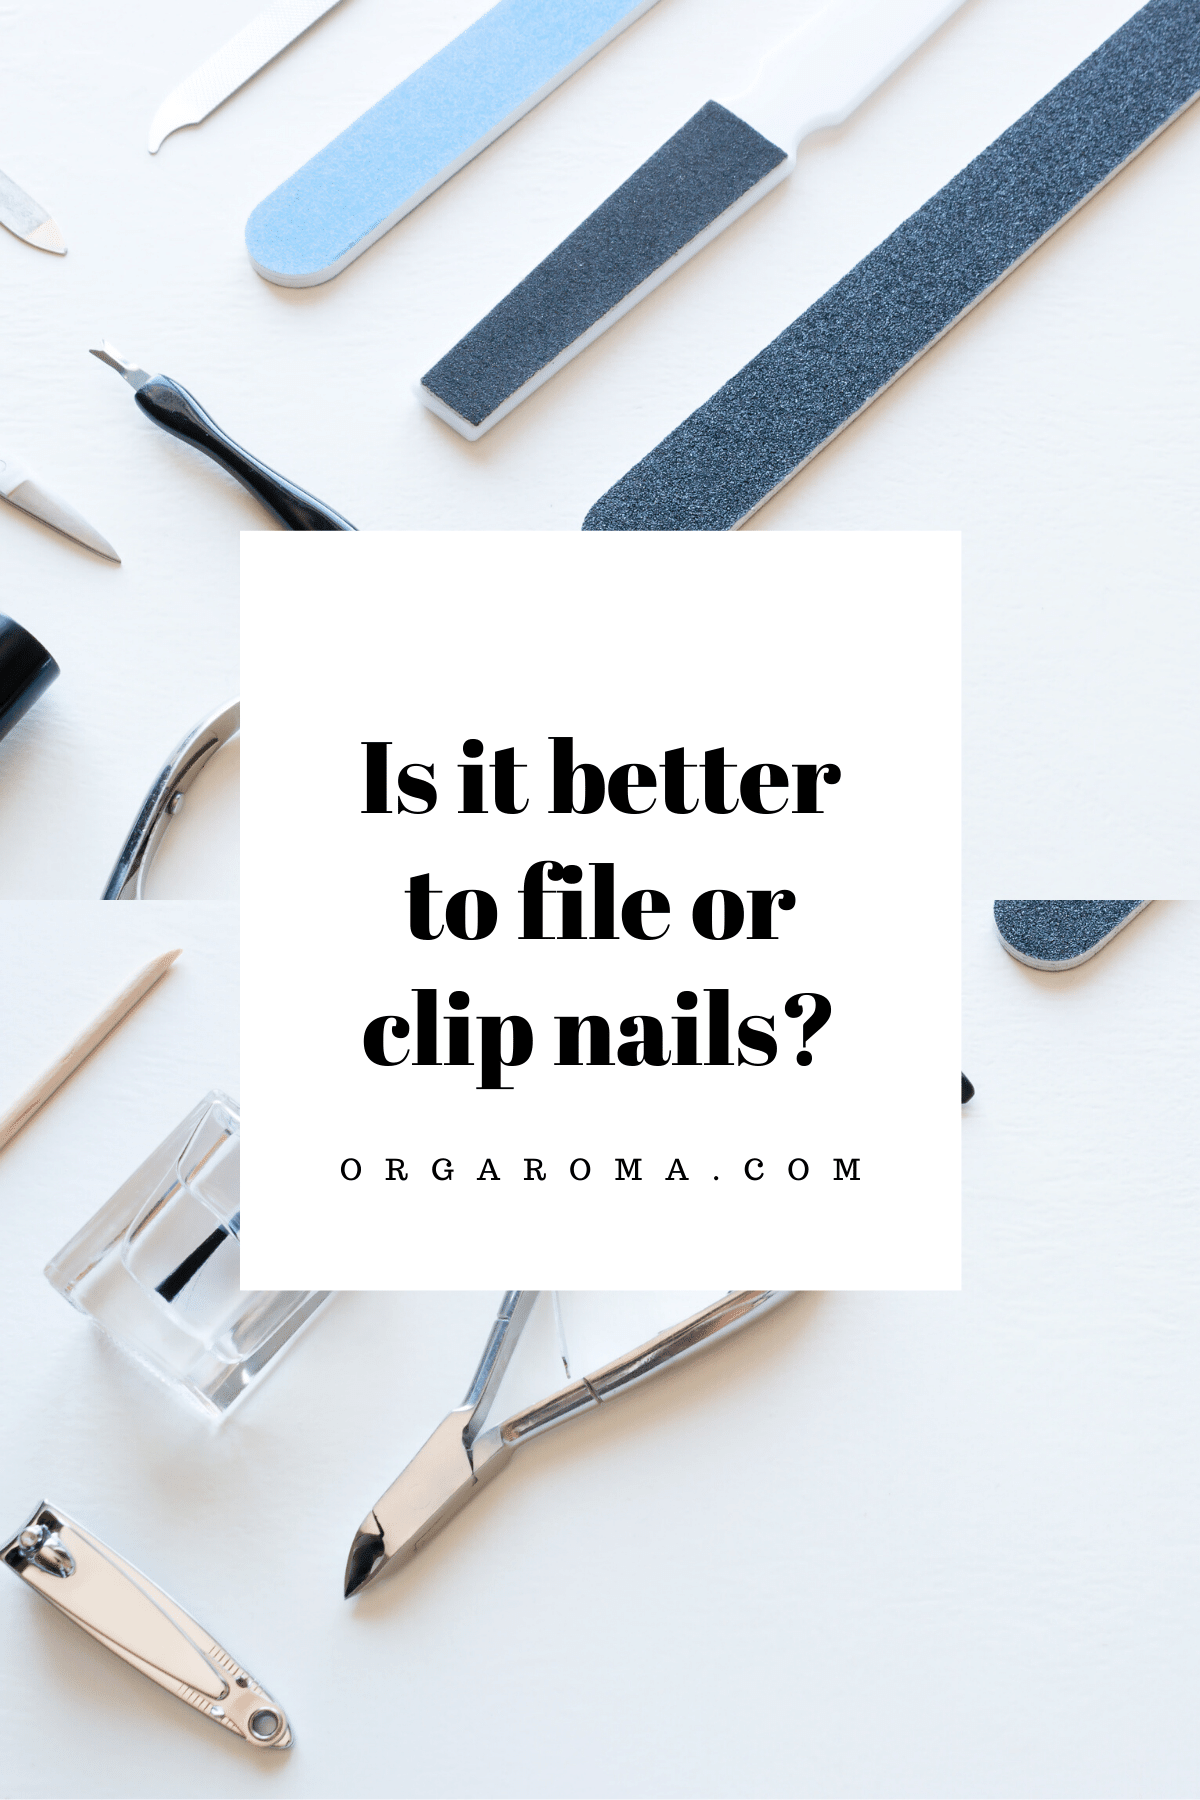 Is it better to file or clip nails - Orgaroma